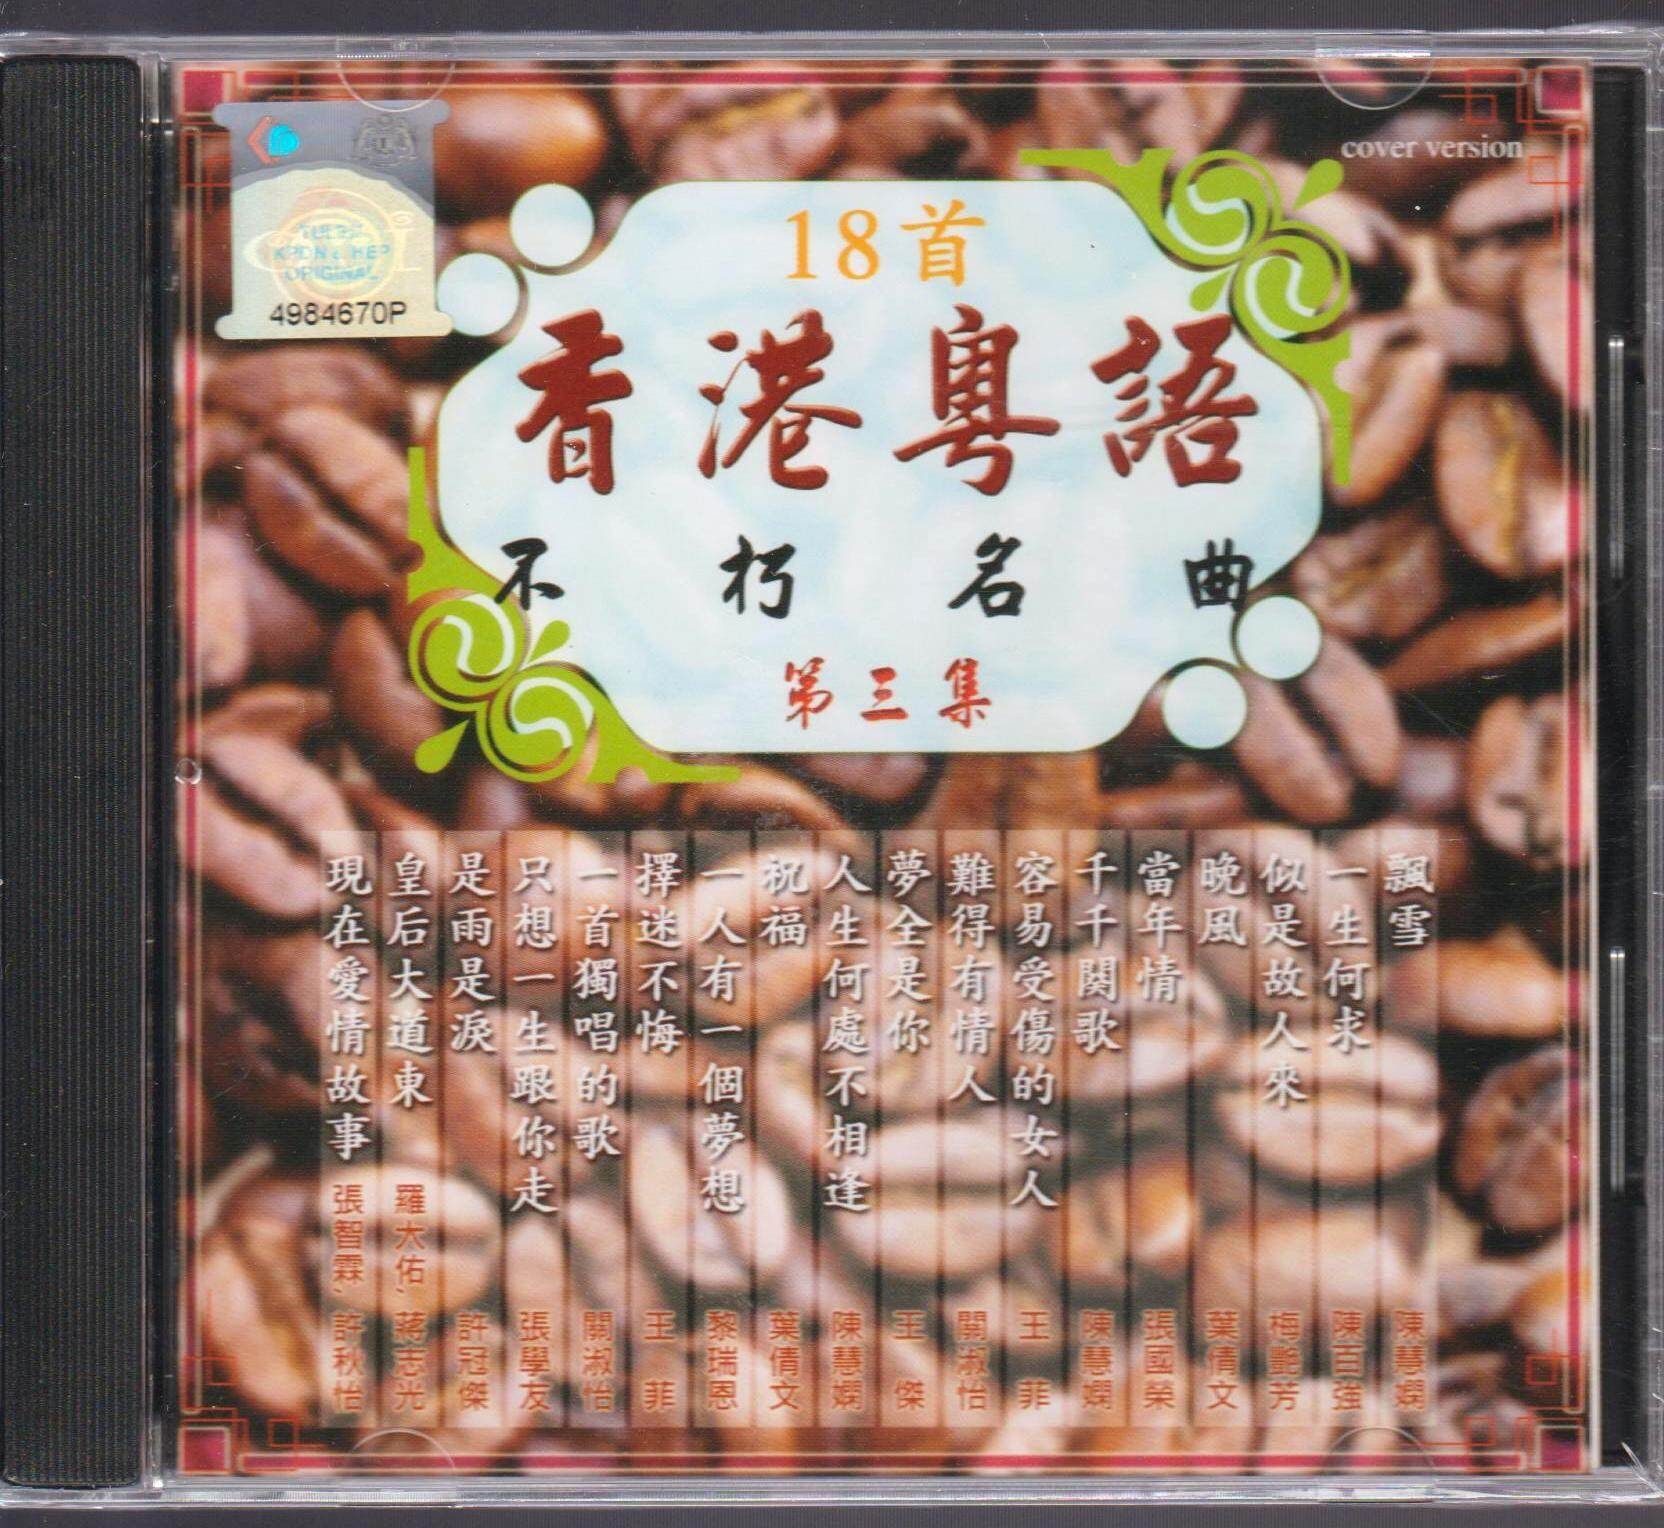 NEW CD Best Collection of Hong Kong Cantonese Song 18首香港粤语不朽名曲 第三集